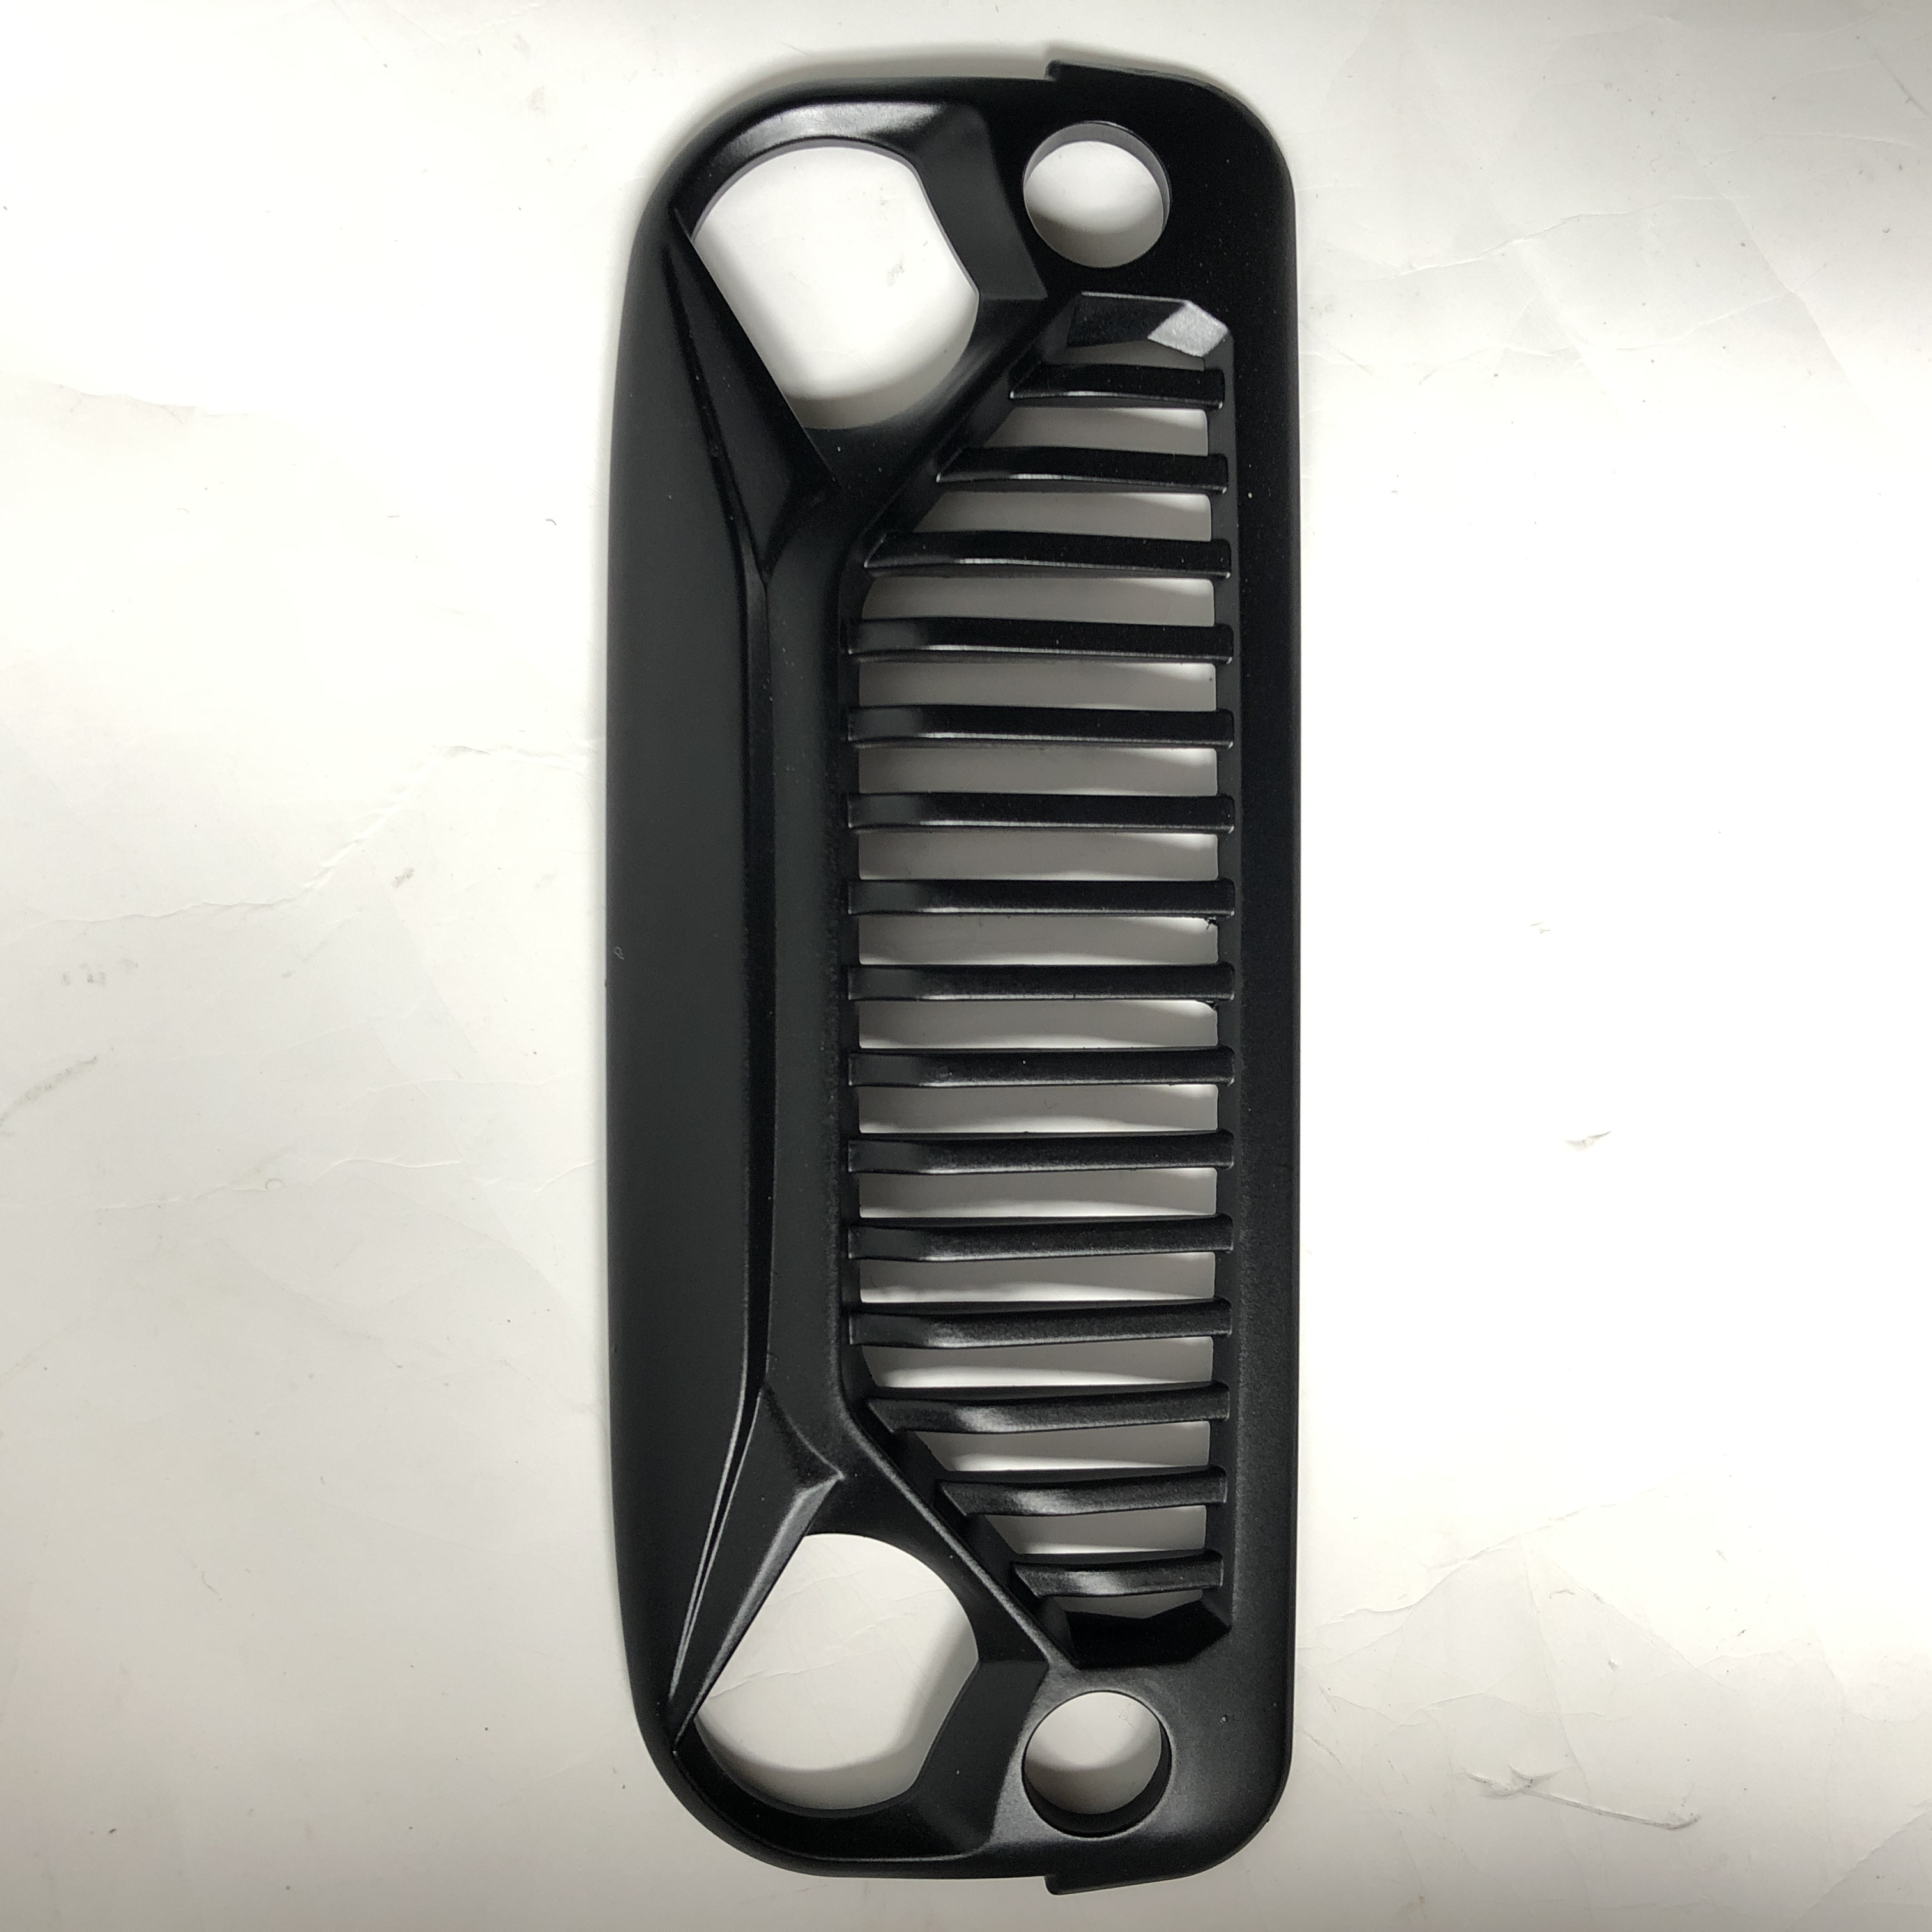 Image 2 - RC Car Air Inlet Grille Front Face Engine Hood for 1/10 RC Crawler Axial SCX10 90046 90047 Jeep Wrangler Rubicon Body She-in Parts & Accessories from Toys & Hobbies